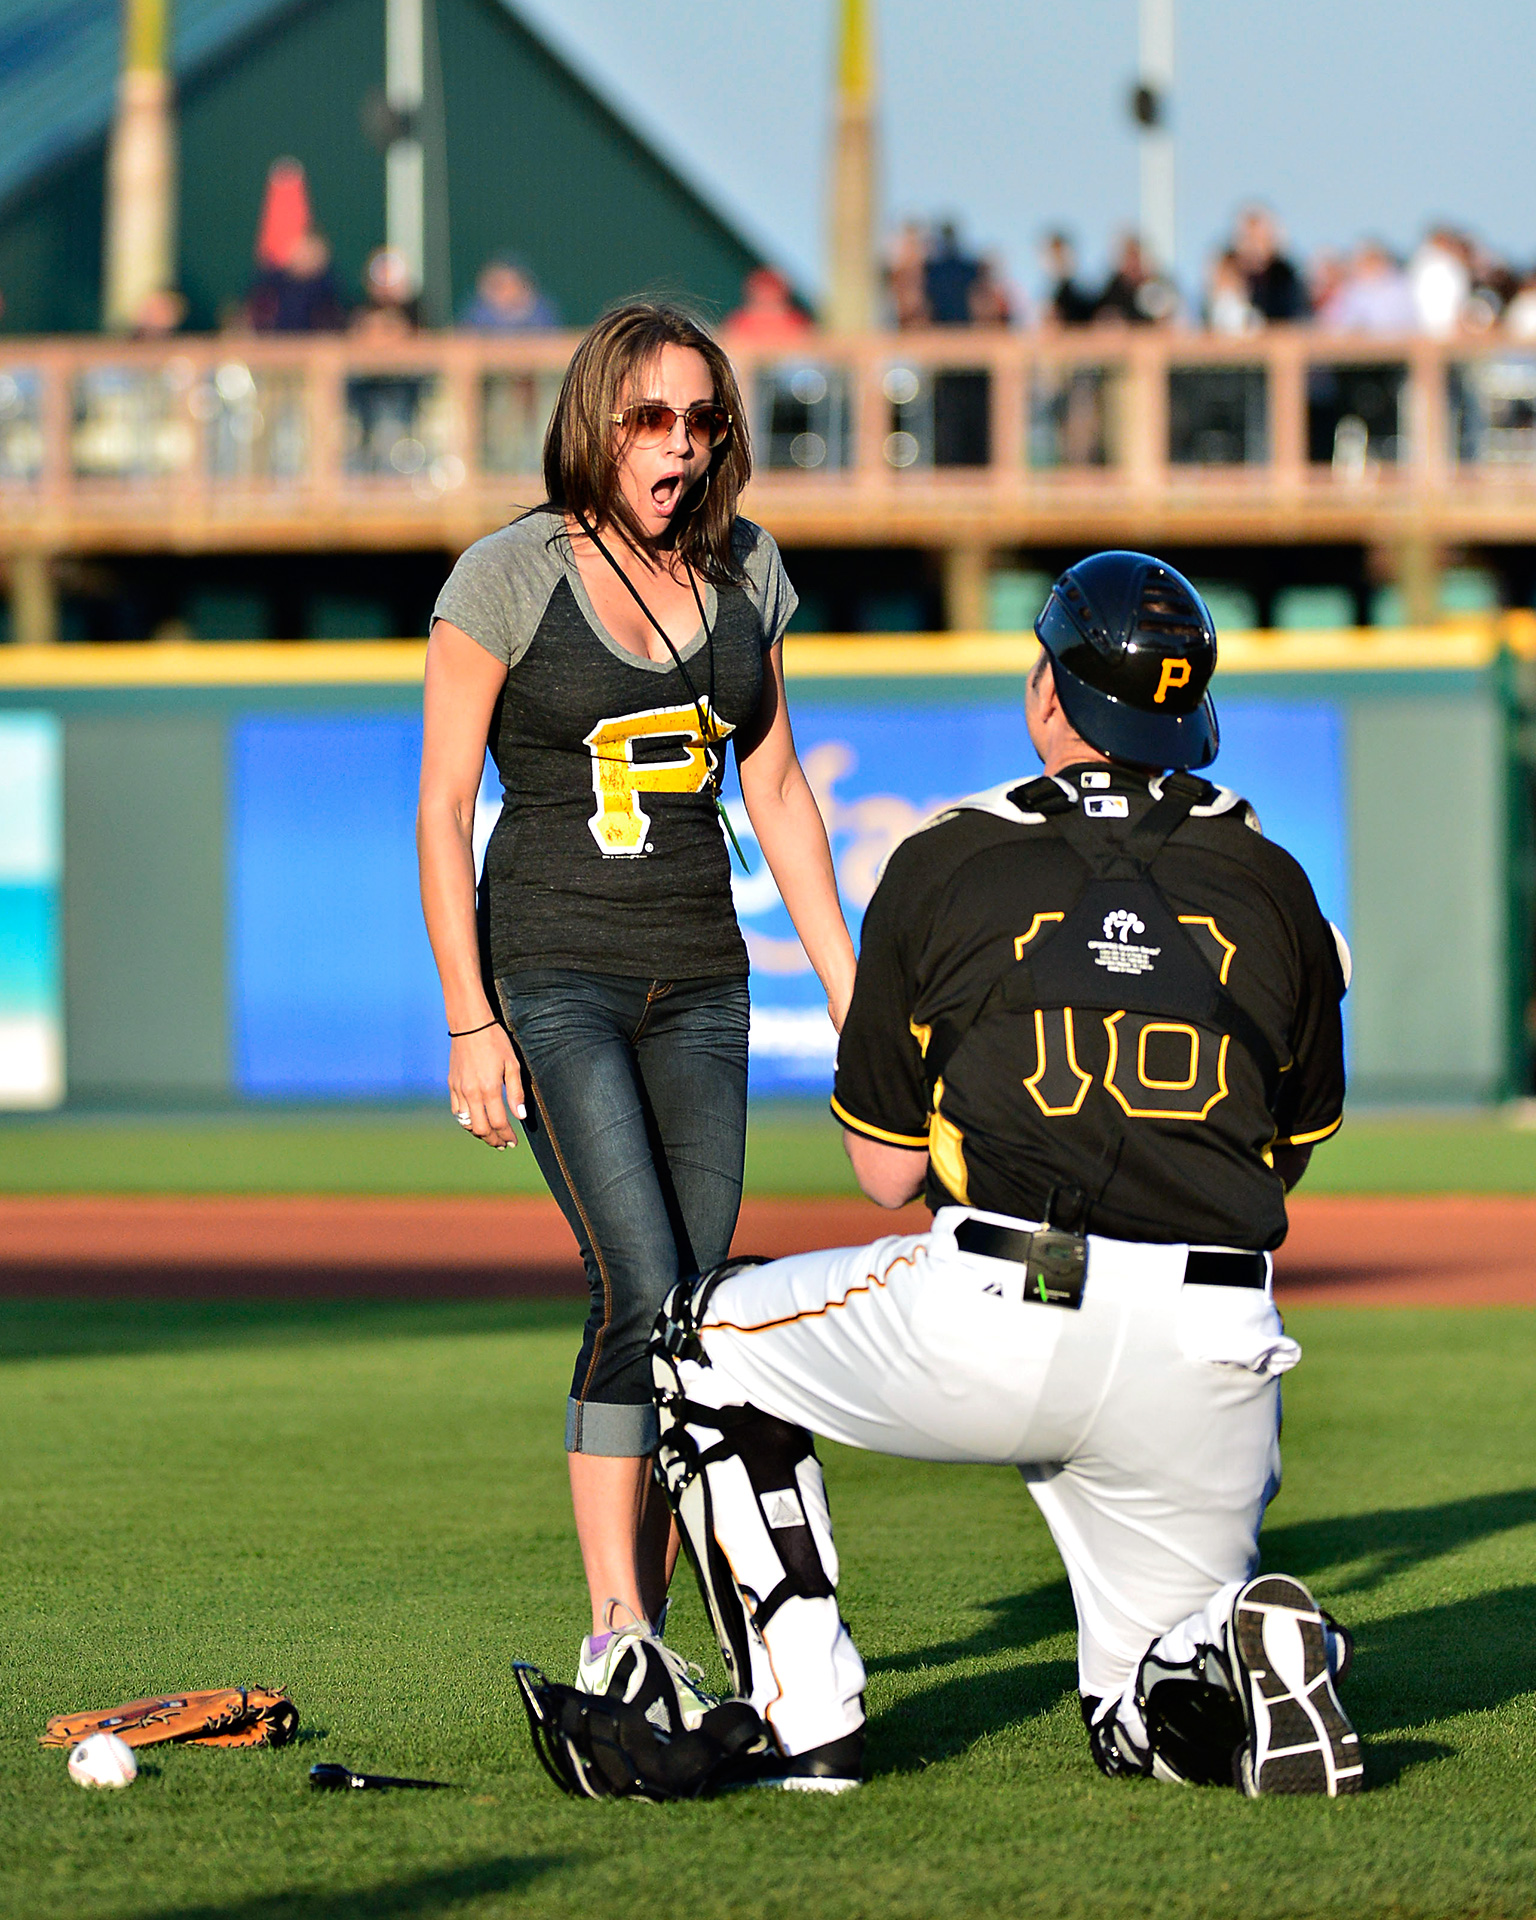 Unlike Johnson, Pittsburgh Pirates catcher Kelly Keenan couldn't wait until after the game -- or even until the 2014 season started -- to propose to his girlfriend Samantha Bruno. Who says nothing exciting happens during spring training?